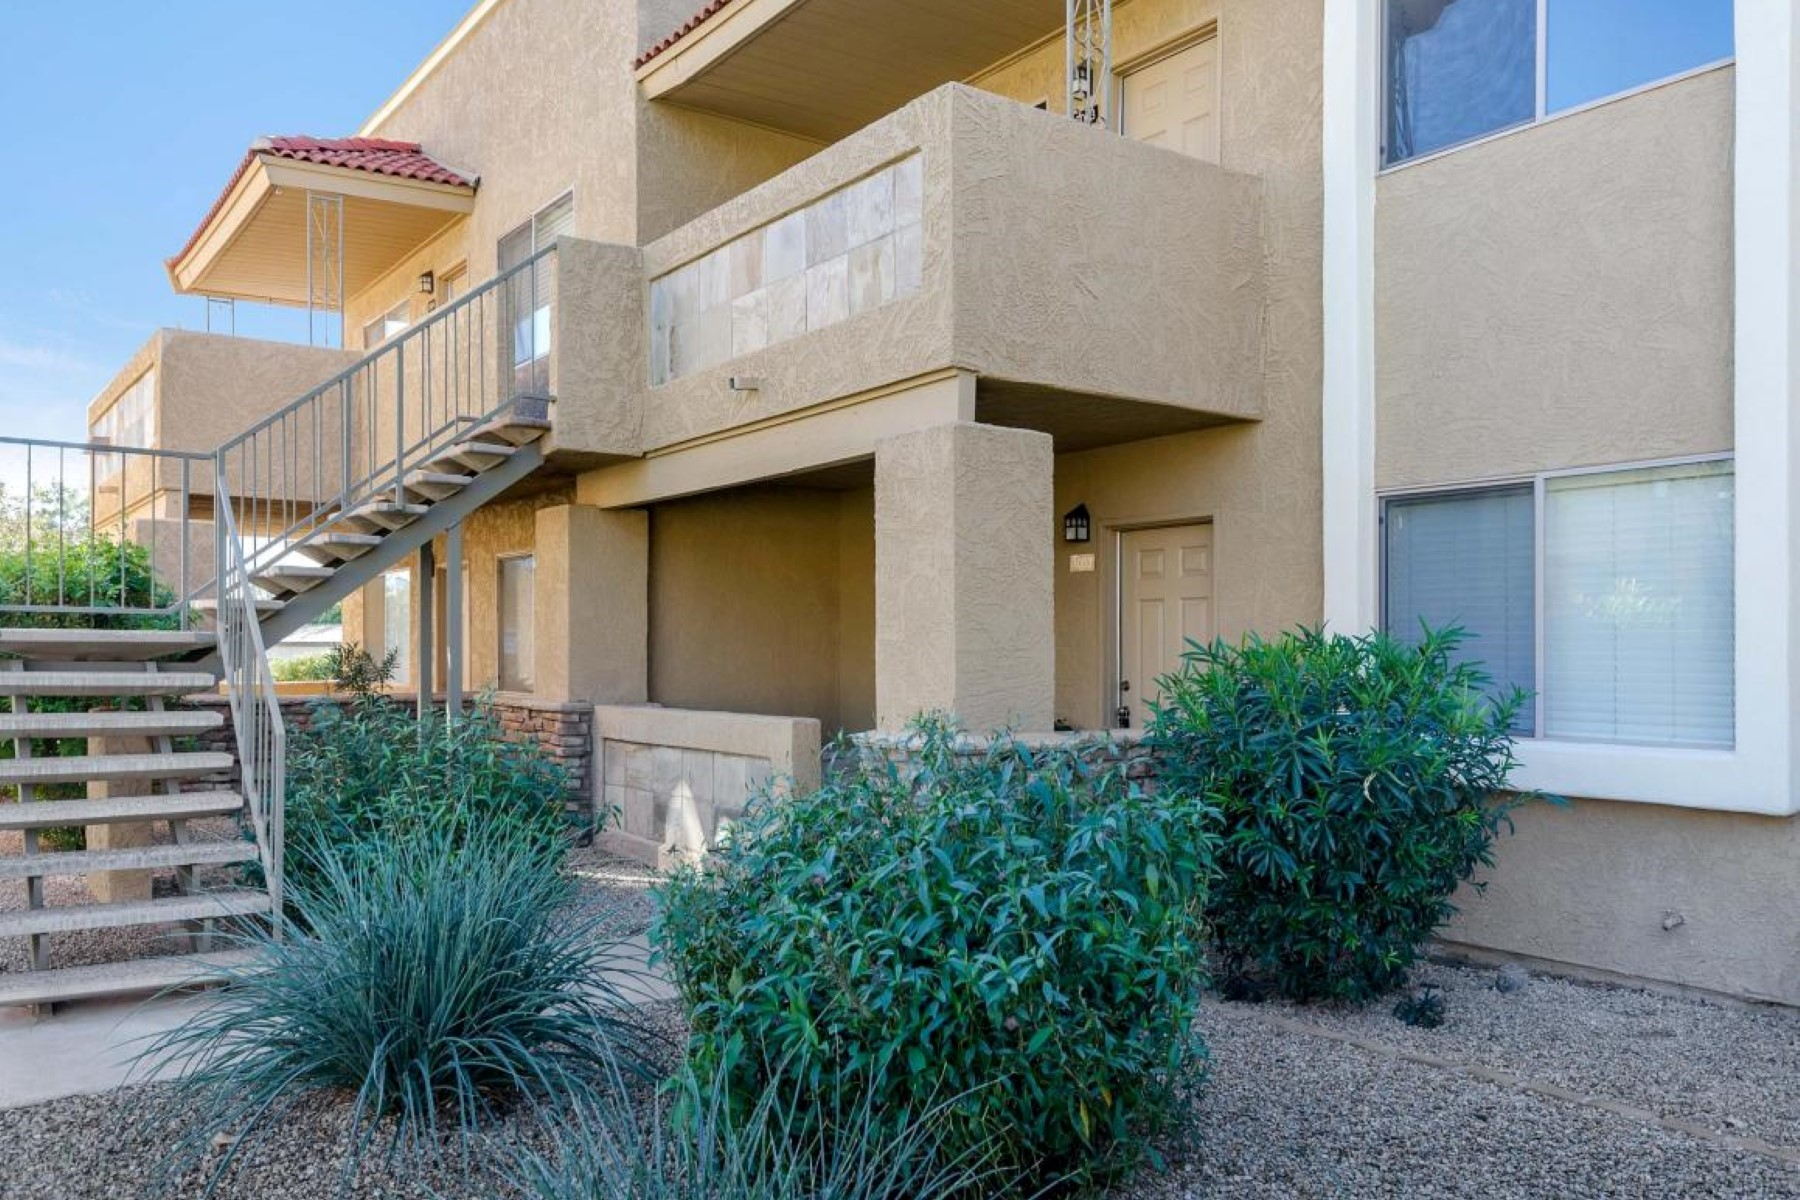 Apartment for Sale at Gated Community in Scottsdale 303 N MILLER RD #1003 Scottsdale, Arizona, 85257 United States